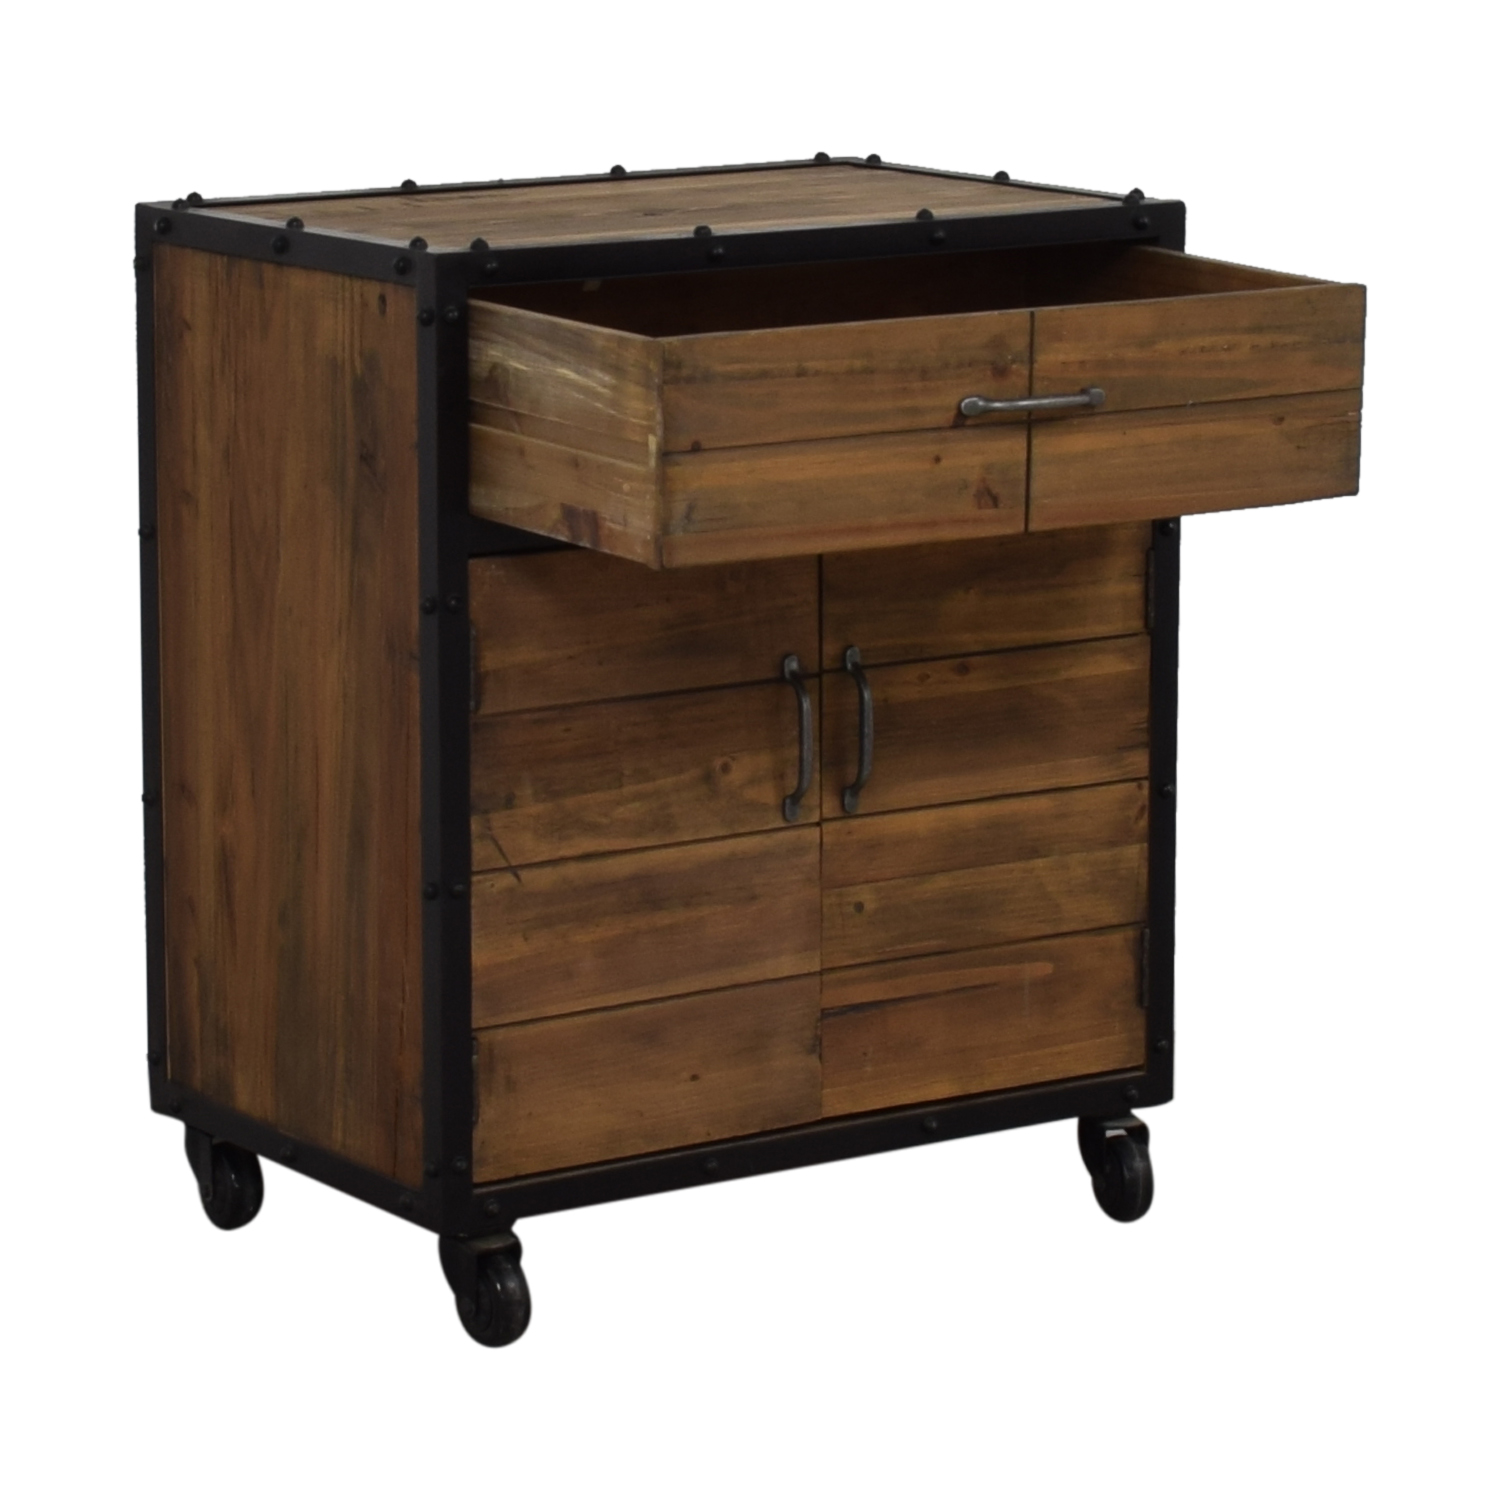 Rustic Single Drawer Wine Cabinet dimensions